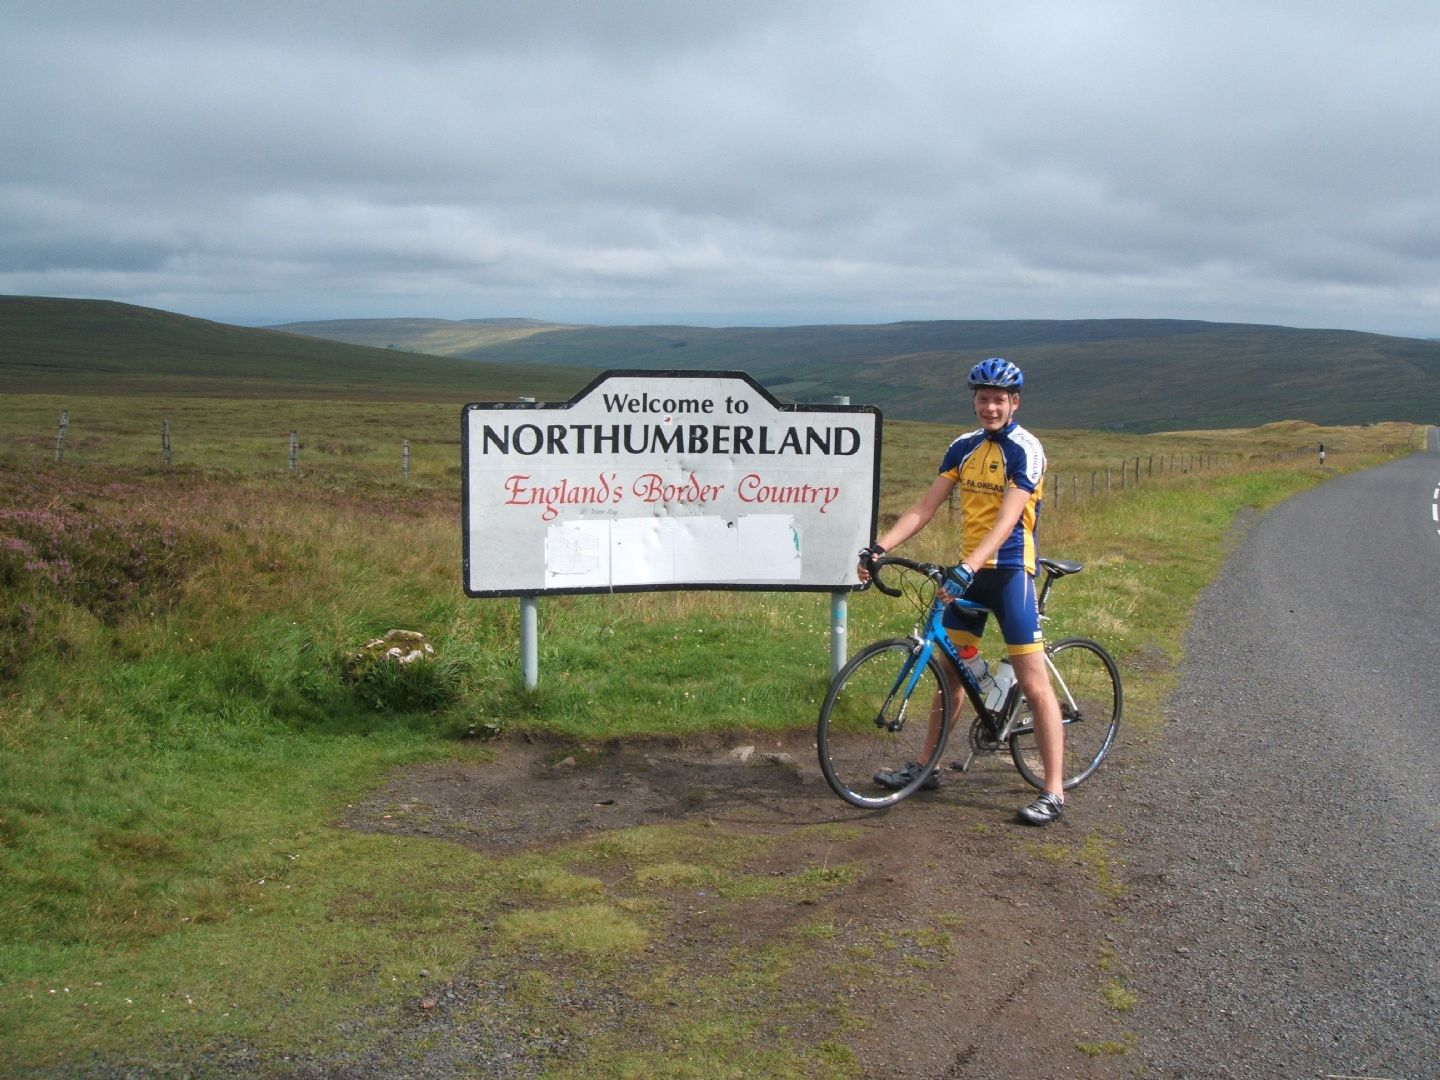 DSCF1195.JPG - UK - C2C - Coast to Coast 2 Days Cycling - Self-Guided Road Cycling Holiday - Road Cycling